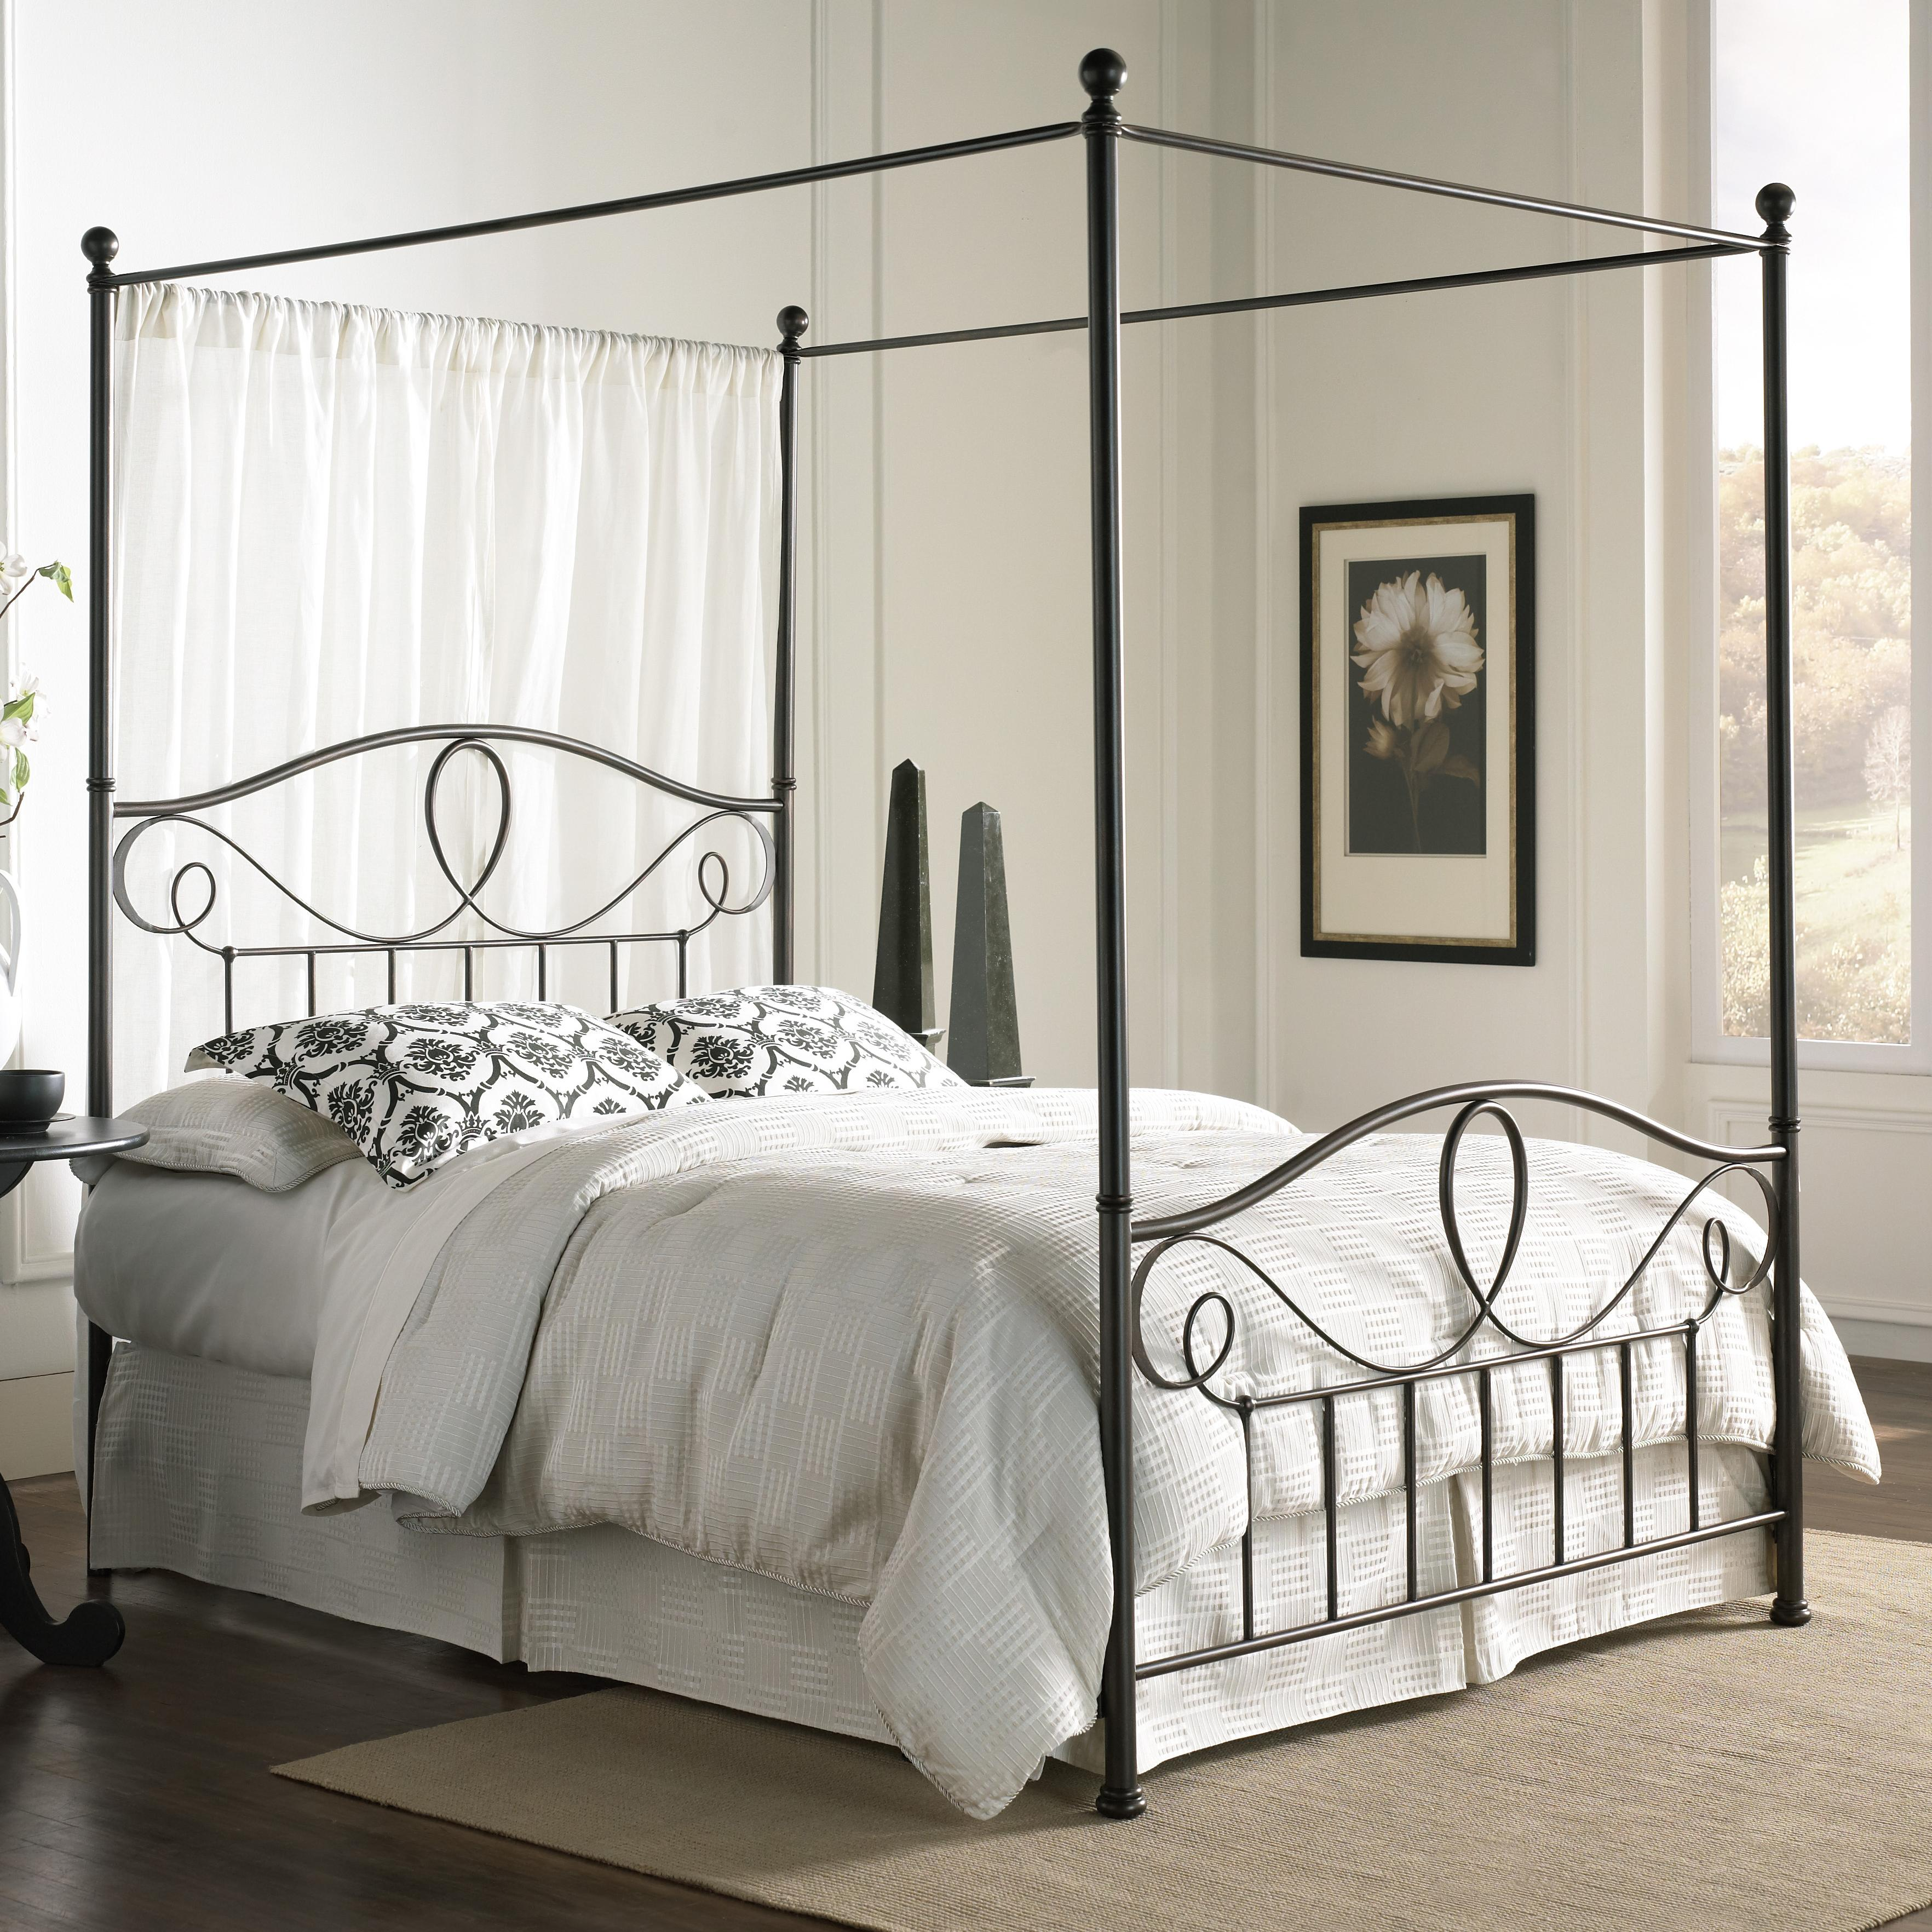 queen sylvania canopy bed - Fashion Bedroom Furniture